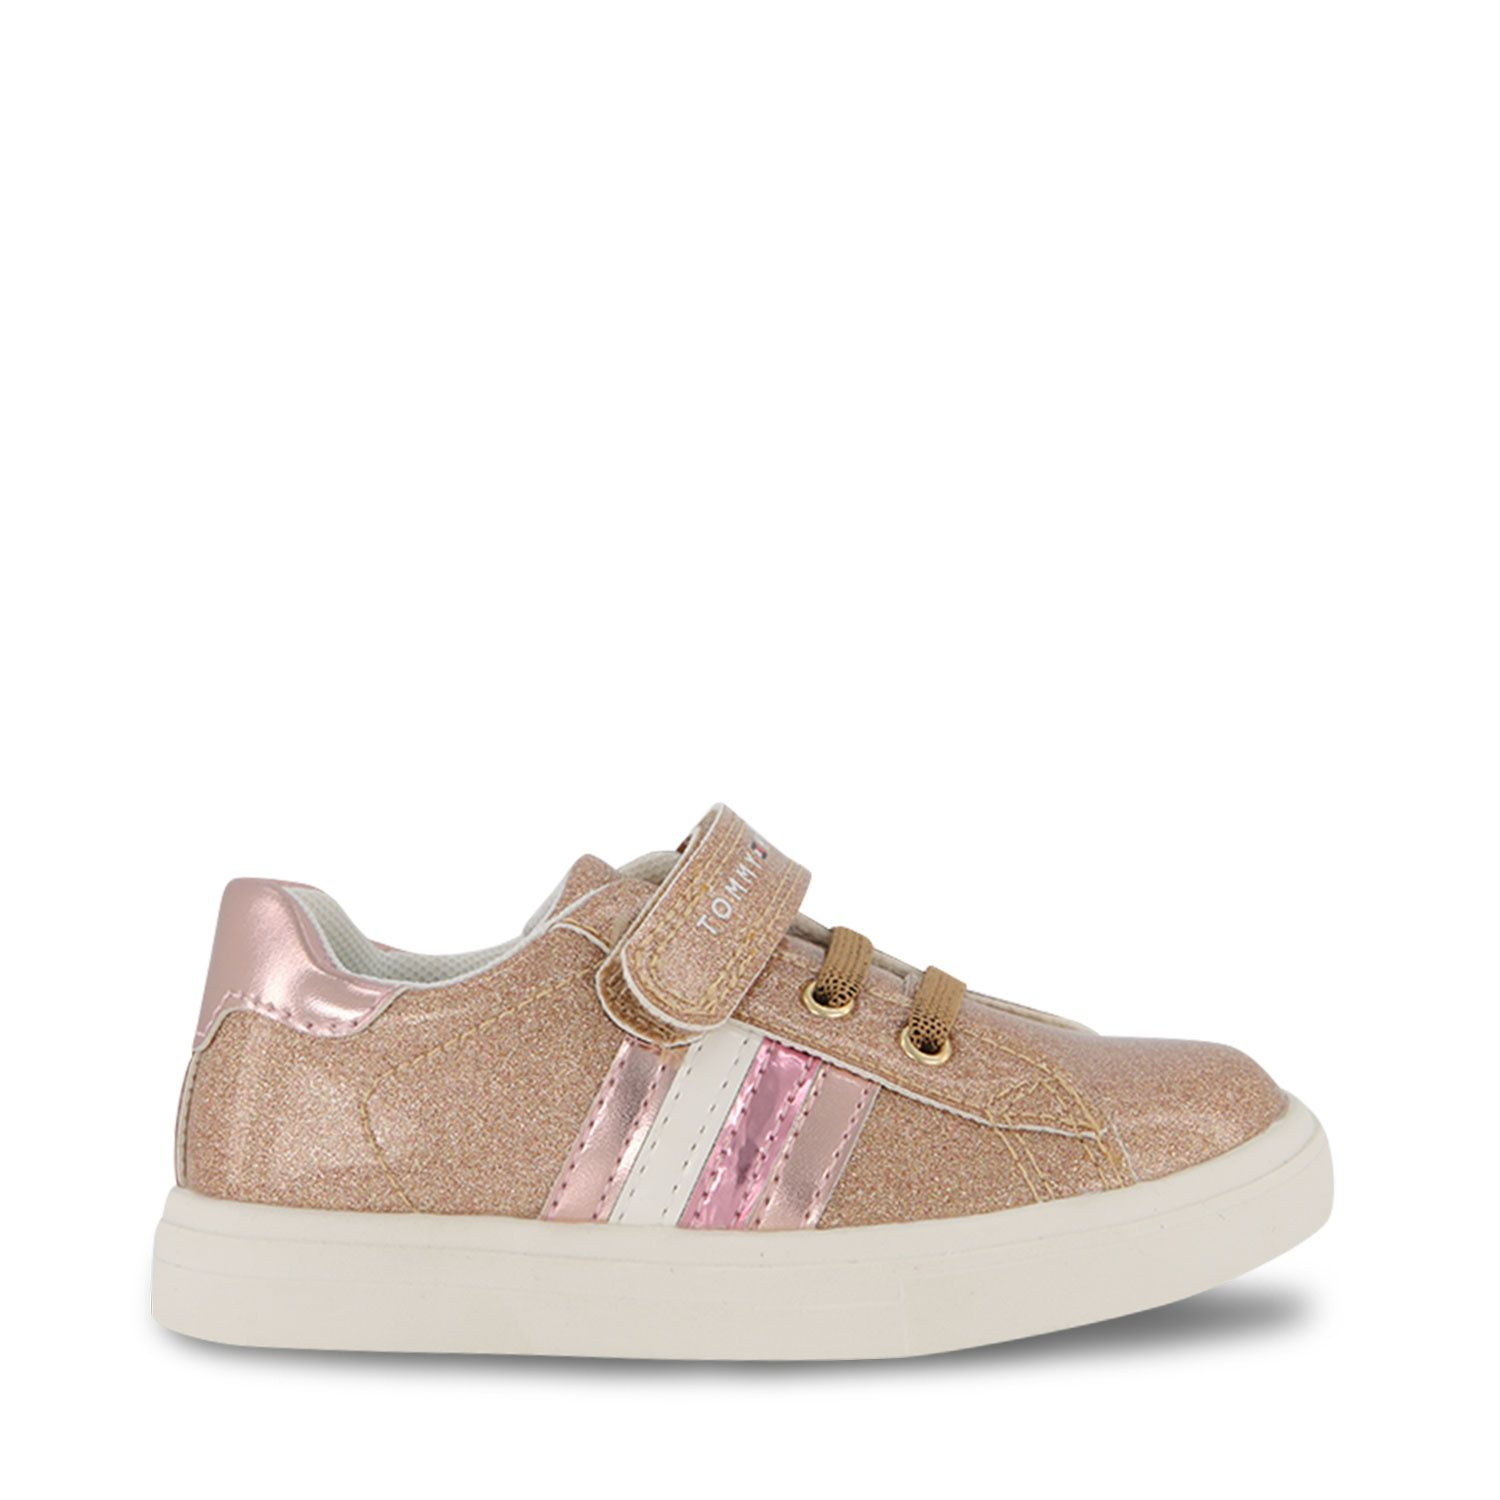 Picture of Tommy Hilfiger 31149 kids sneakers light pink